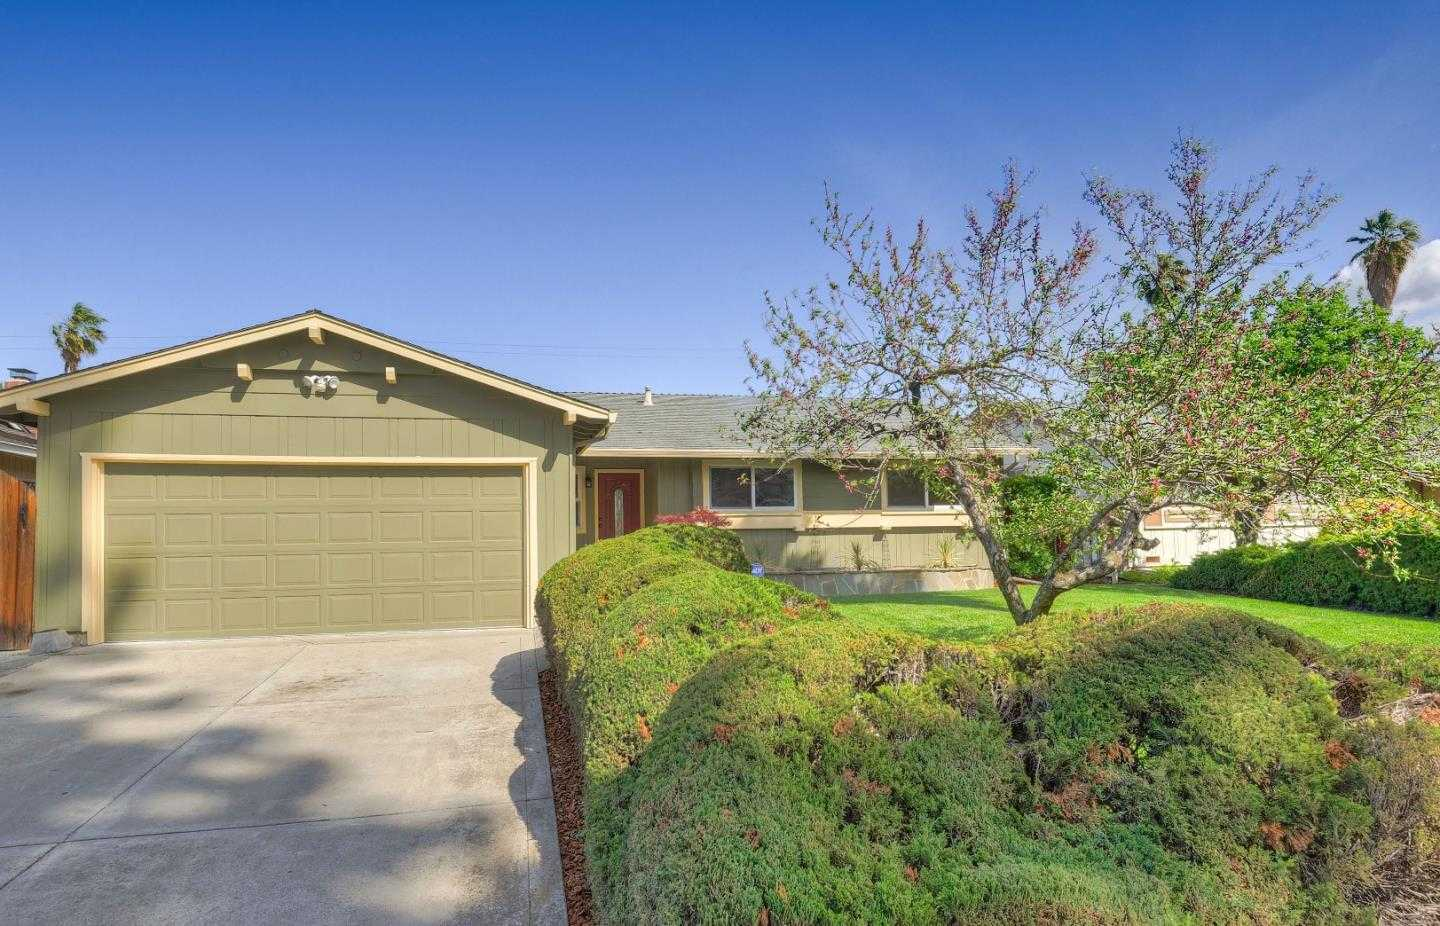 $1,788,800 - 3Br/2Ba -  for Sale in Sunnyvale